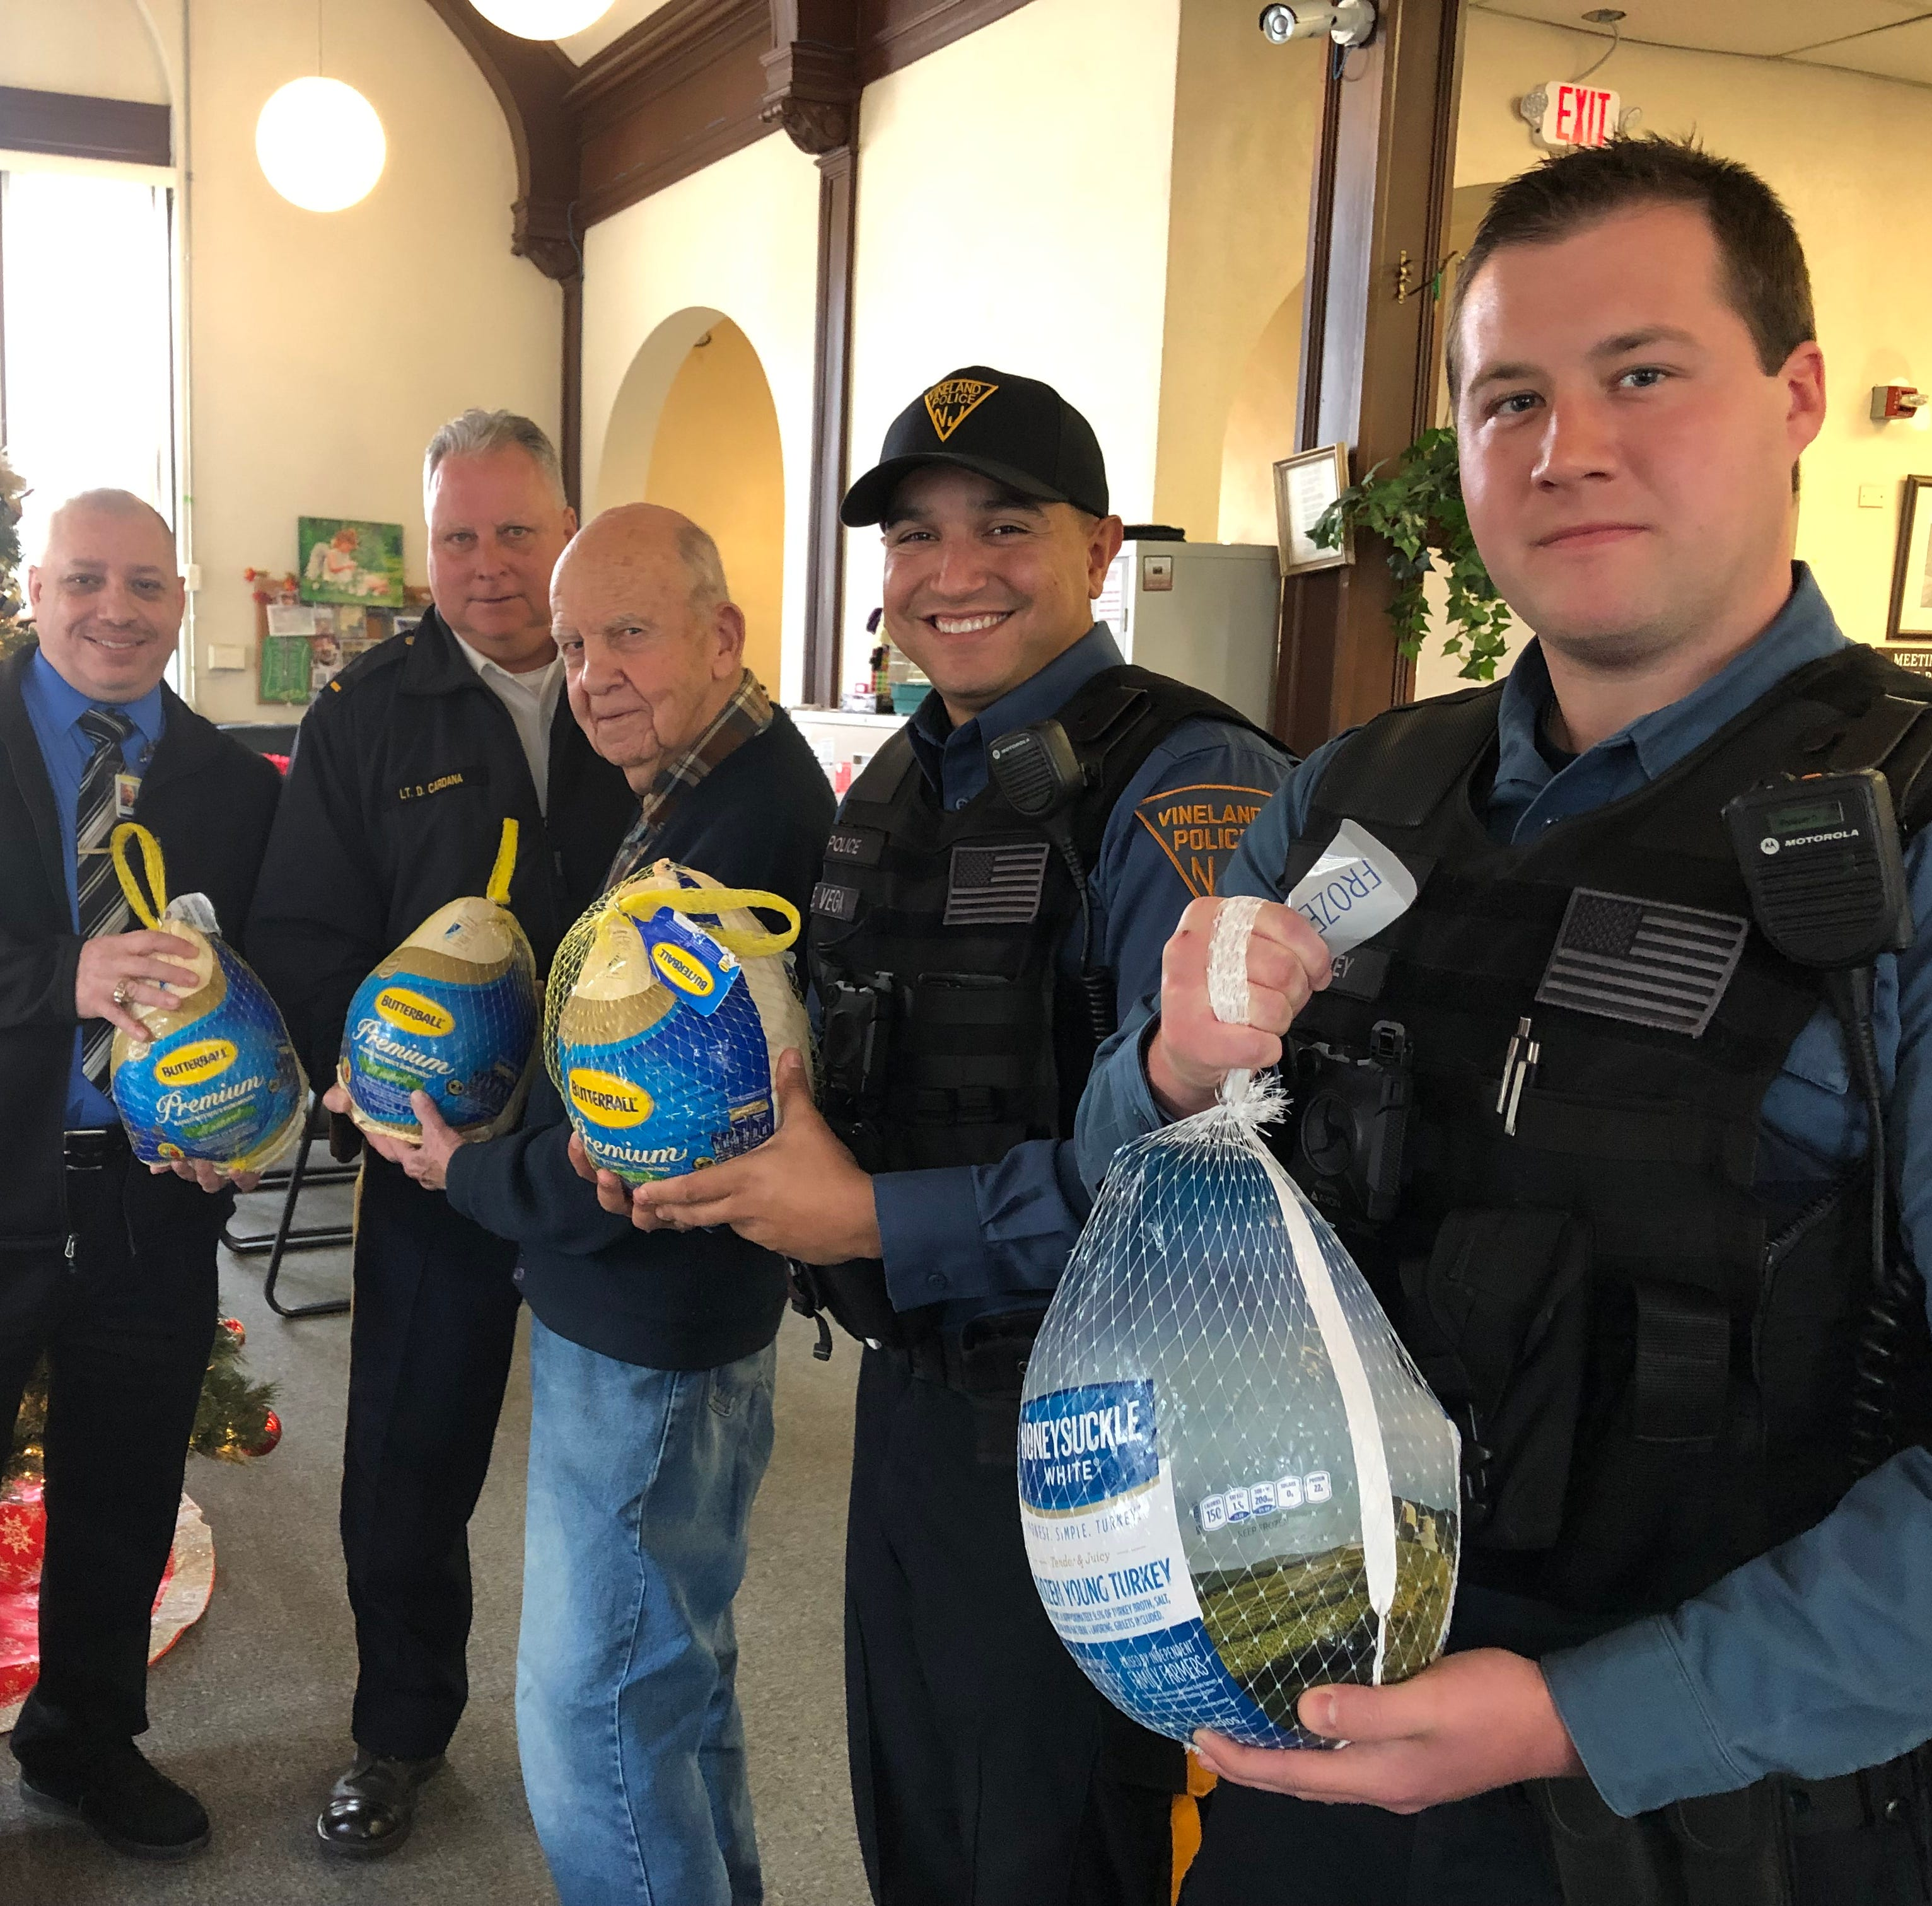 Vineland police deliver Thanksgiving cheer to those in need